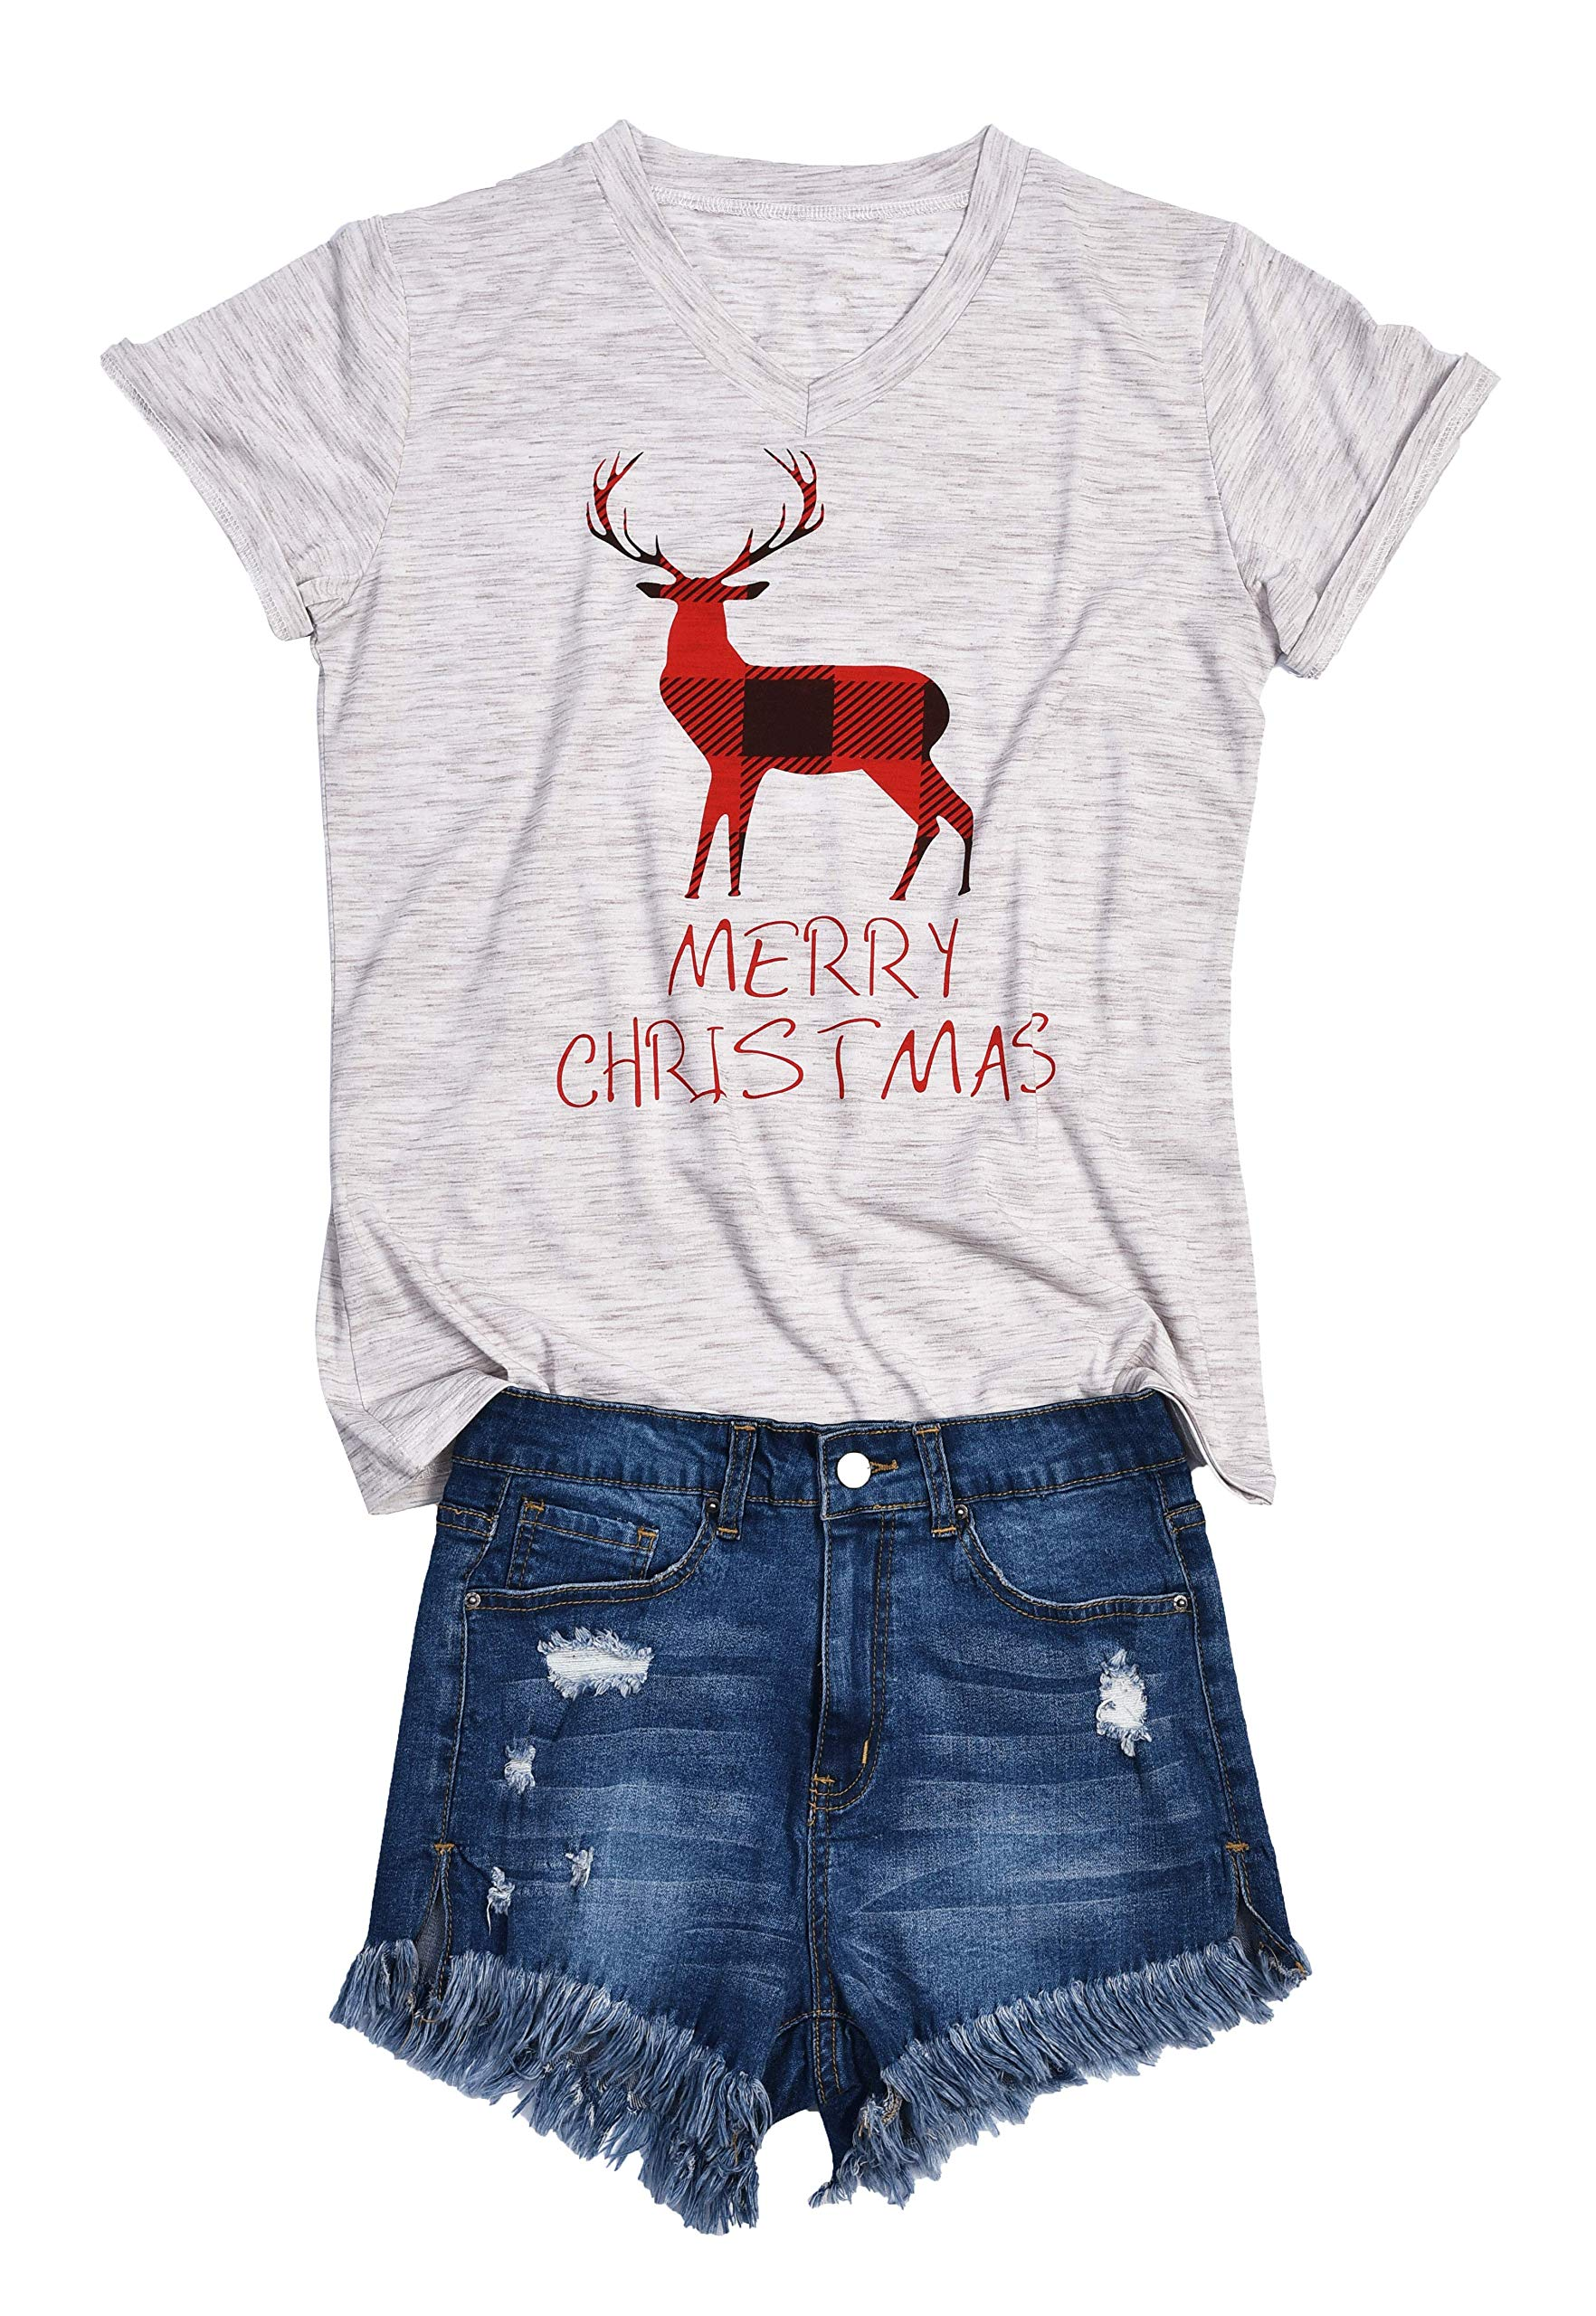 AOVXO Christmas Short Sleeve Shirts for Women Merry Christmas Shirt Hat Truck Reindeer Christmas Movie T-Shirt Meaningful Gift (Gray 2, L)